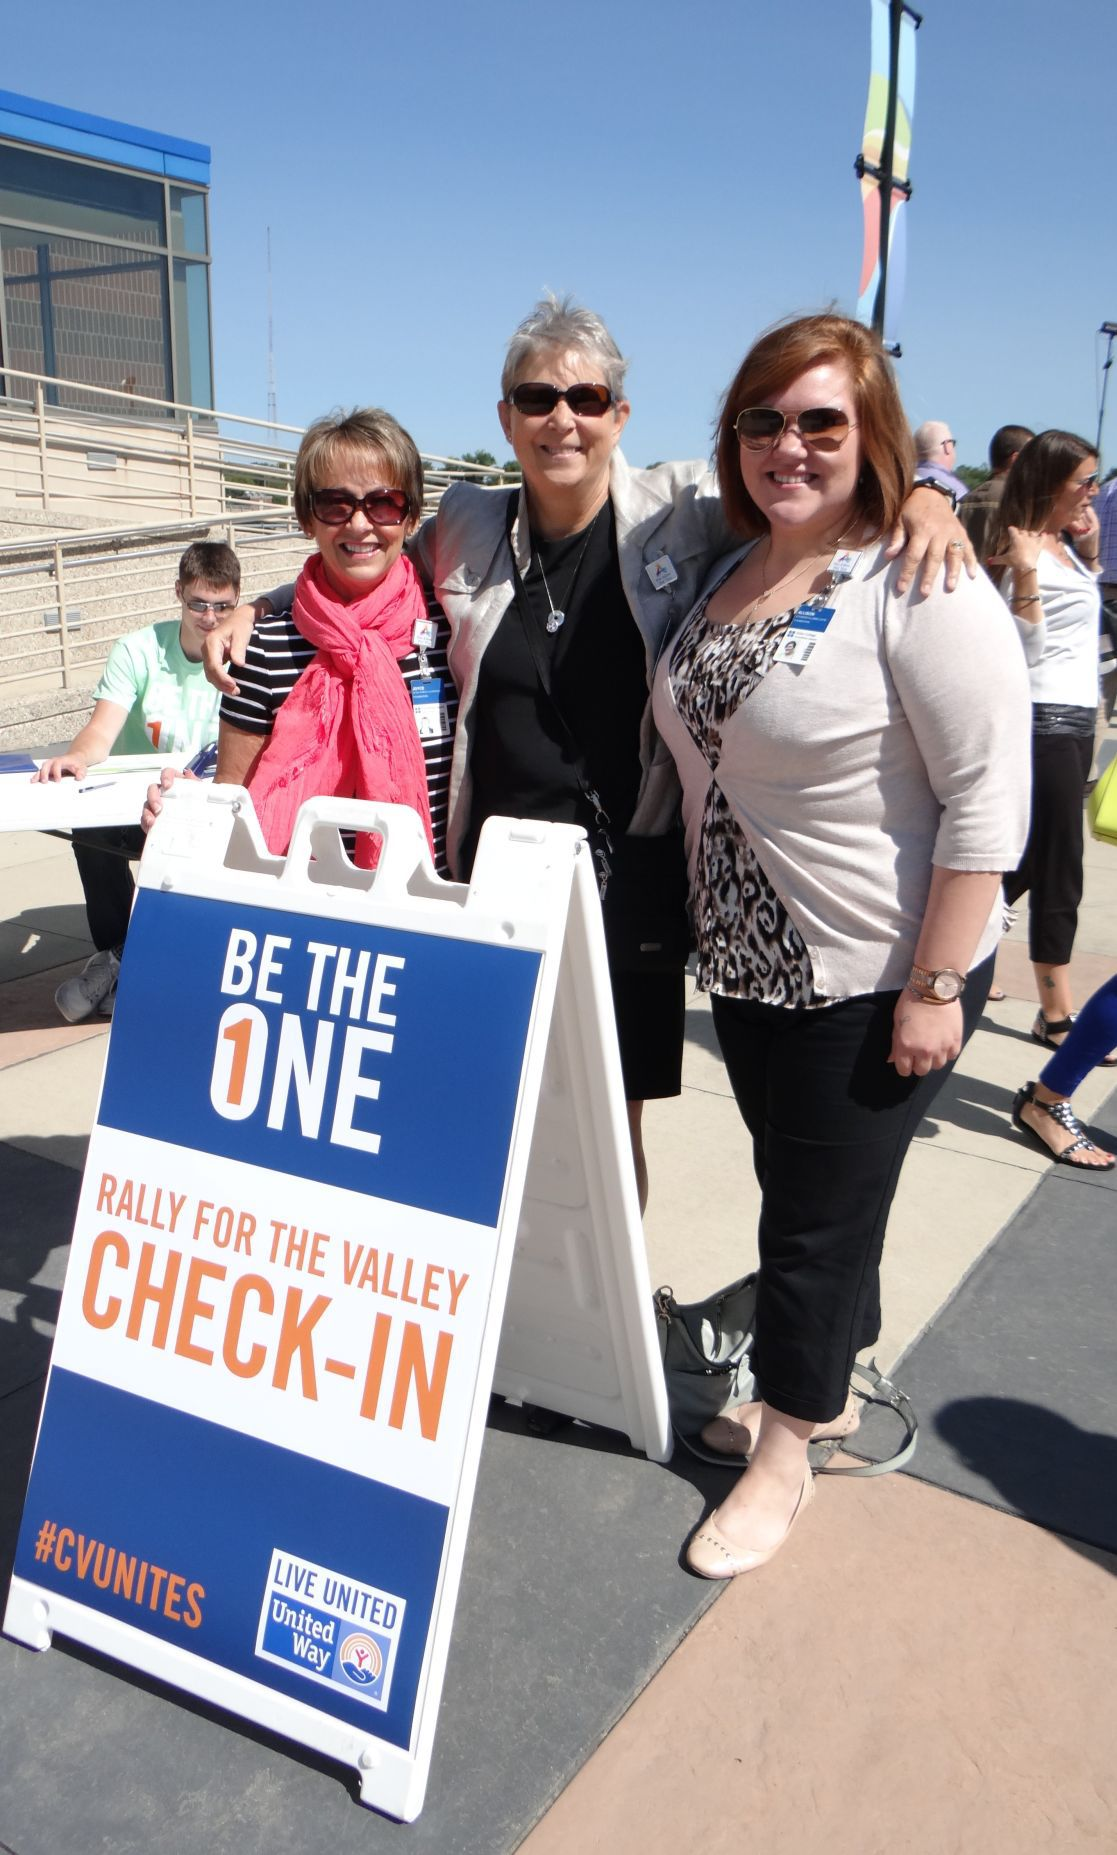 United Way Rallies for the Valley